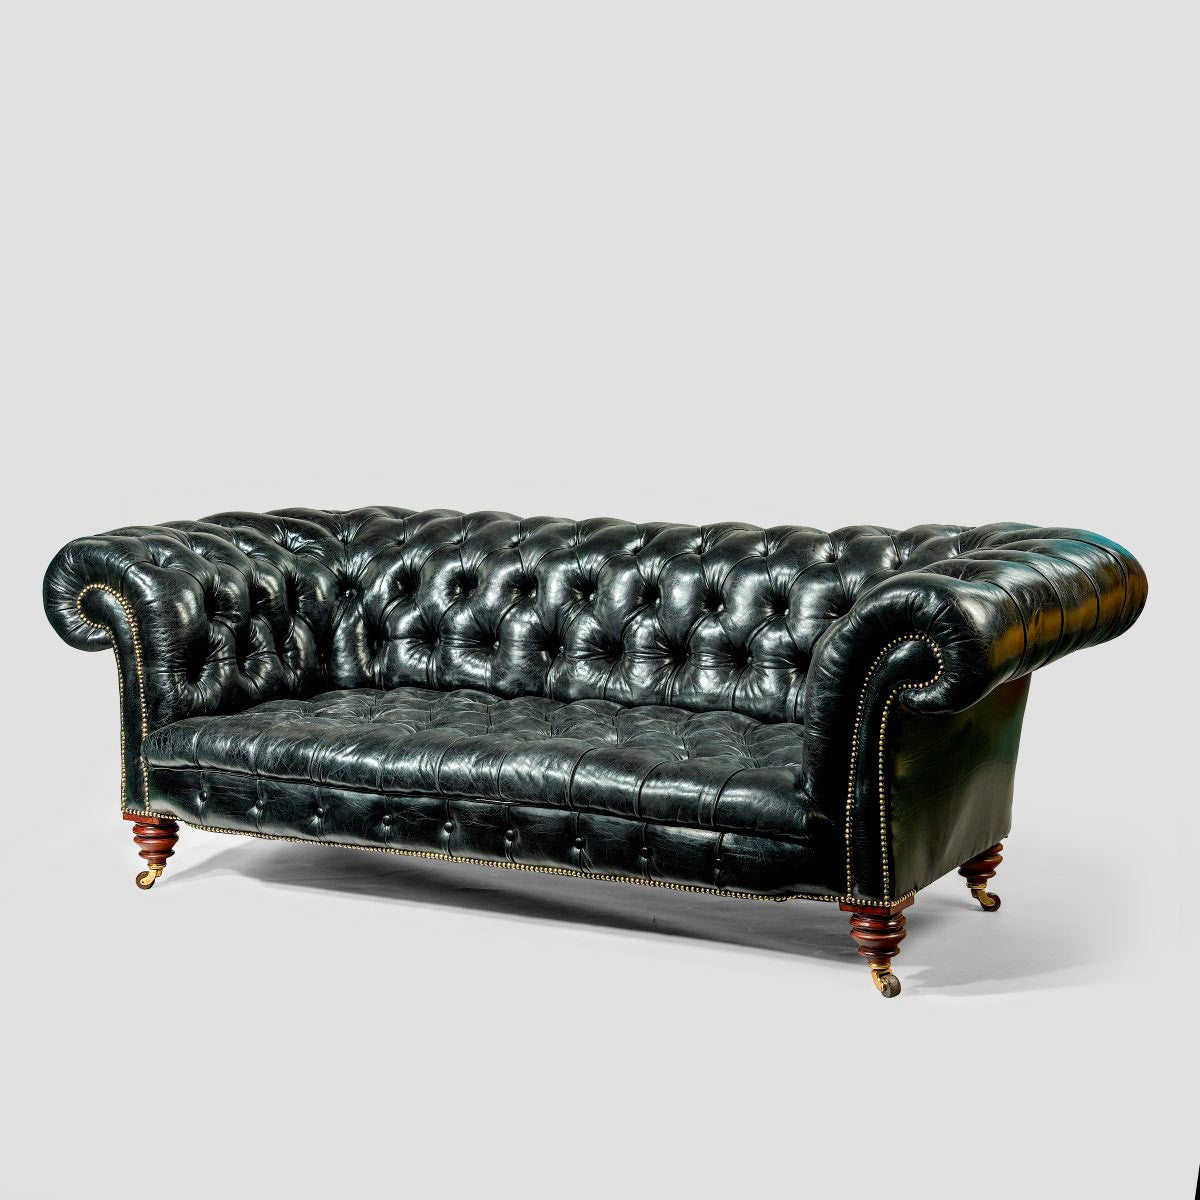 a pair of black leather chesterfield sofas by shoolbred at. Black Bedroom Furniture Sets. Home Design Ideas